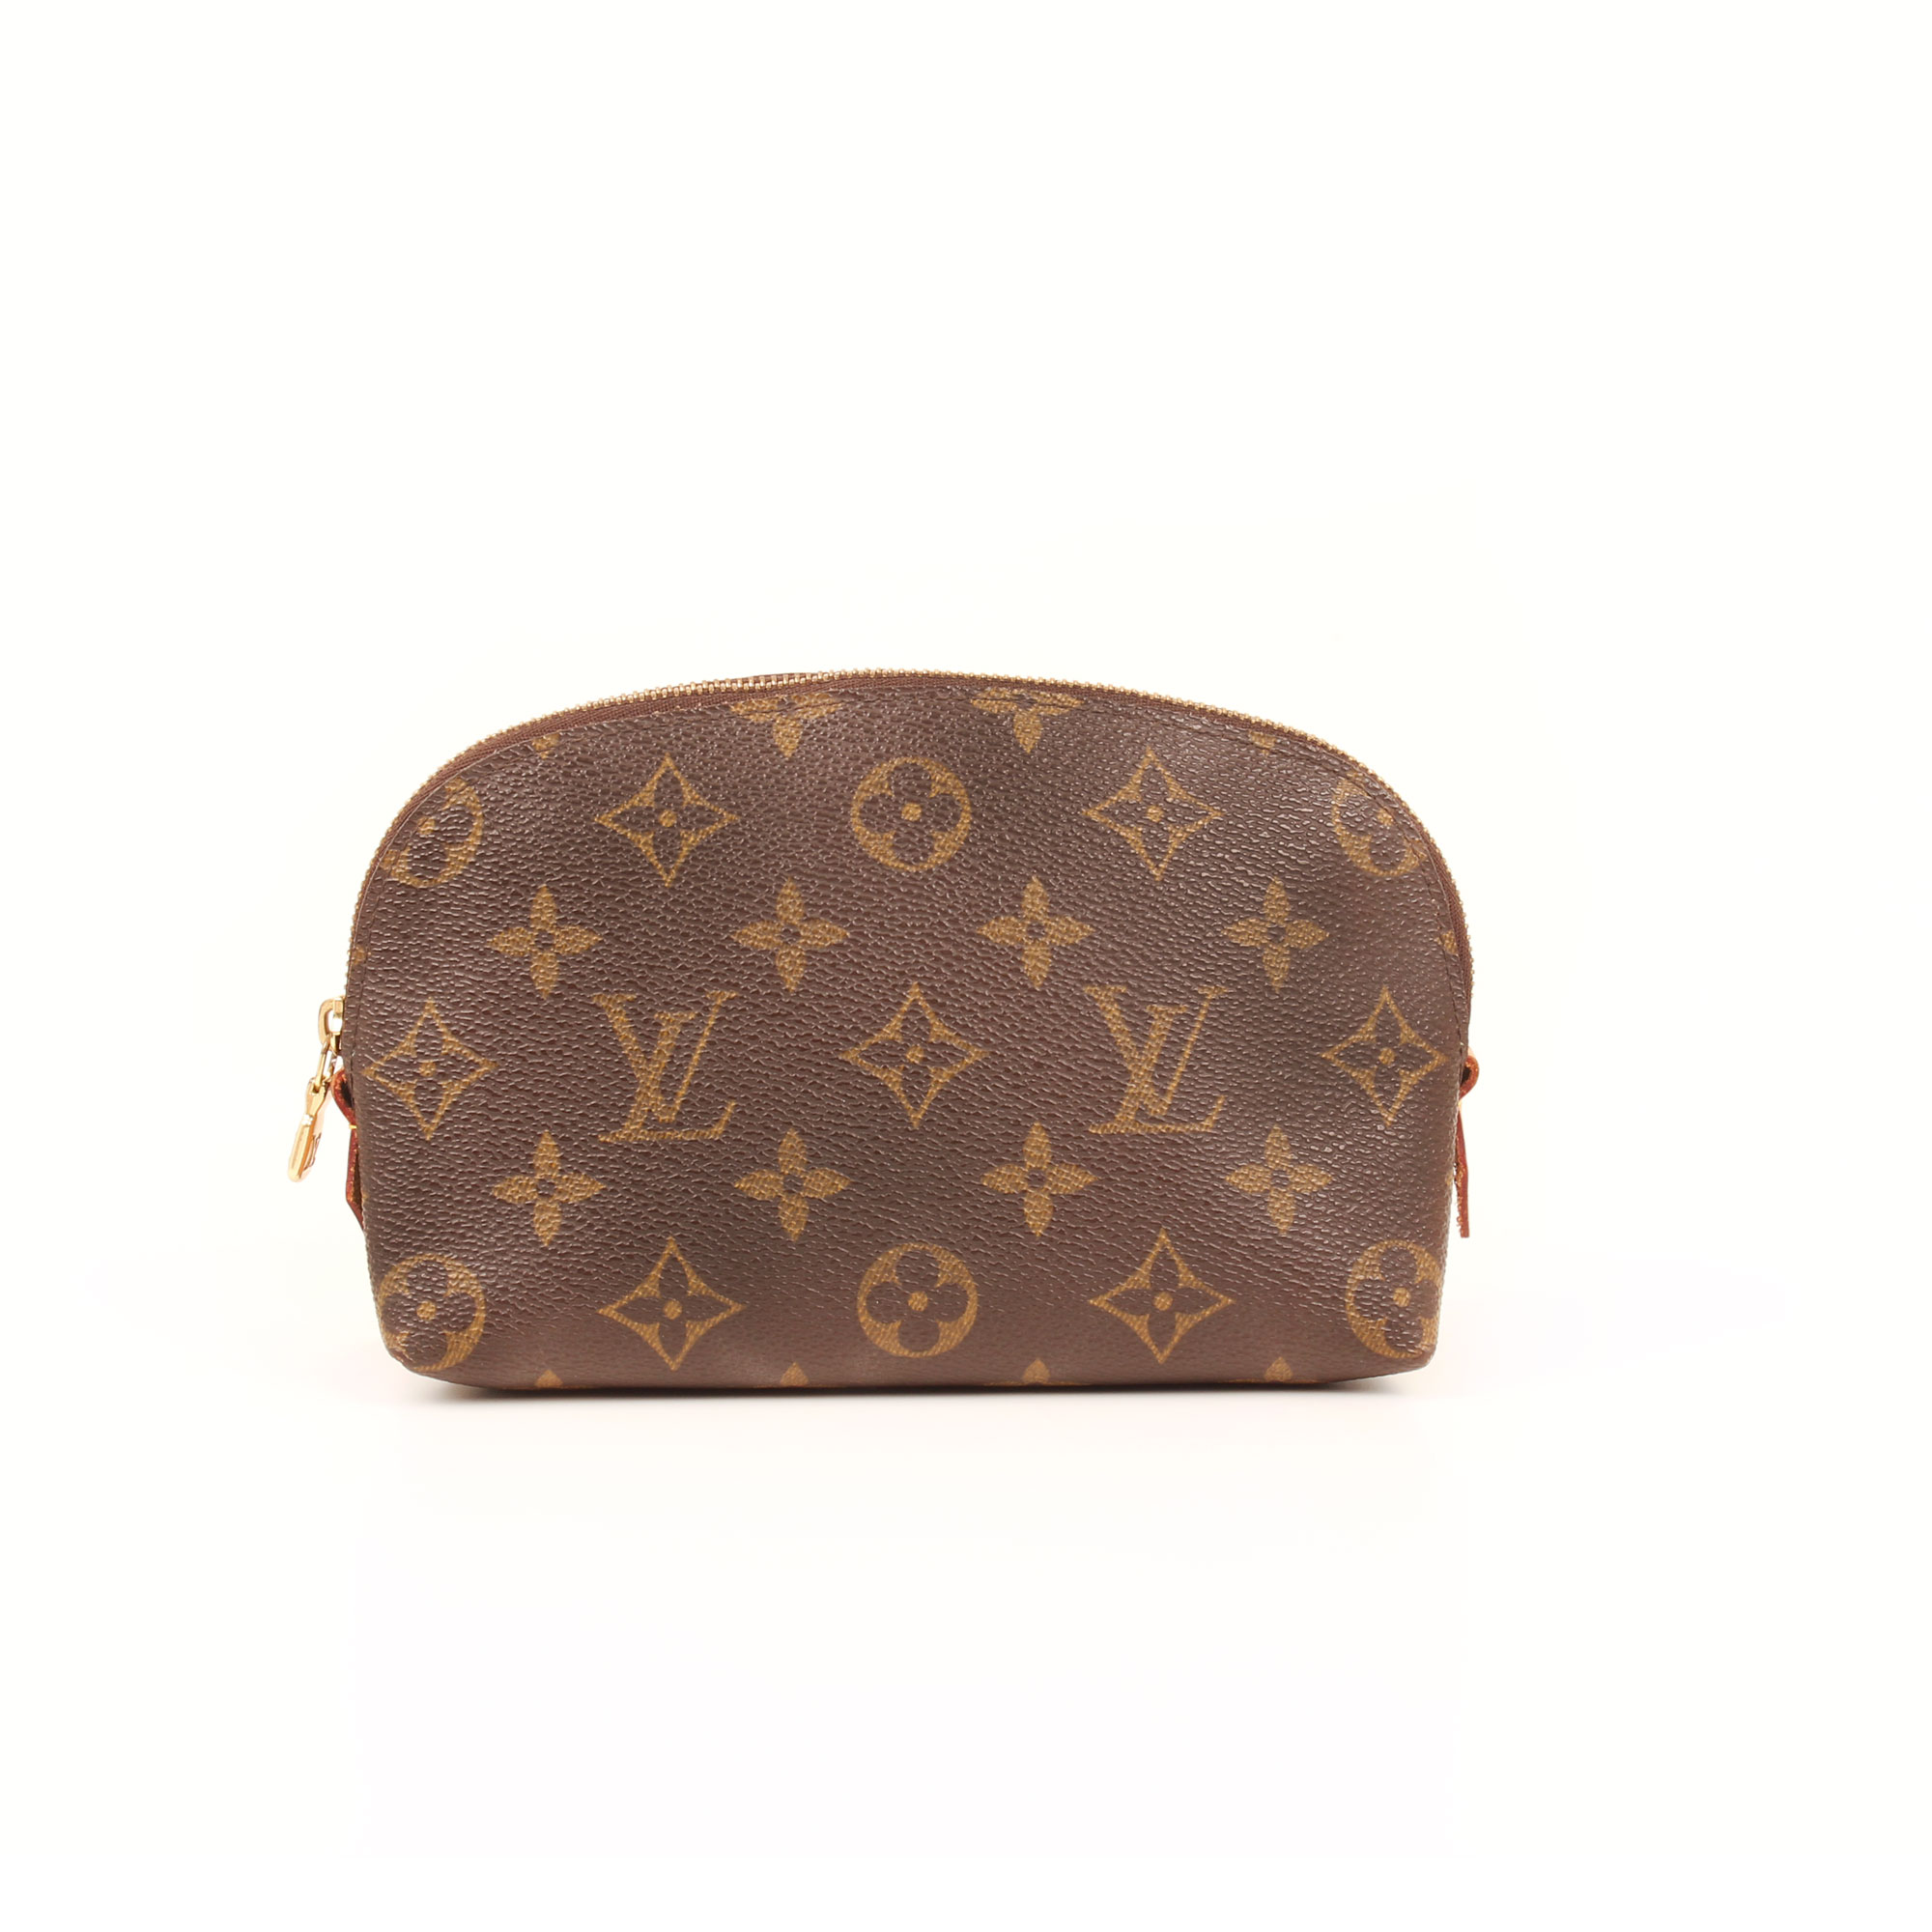 Imagen frontal del louis vuitton neceser cosmeticos monogram